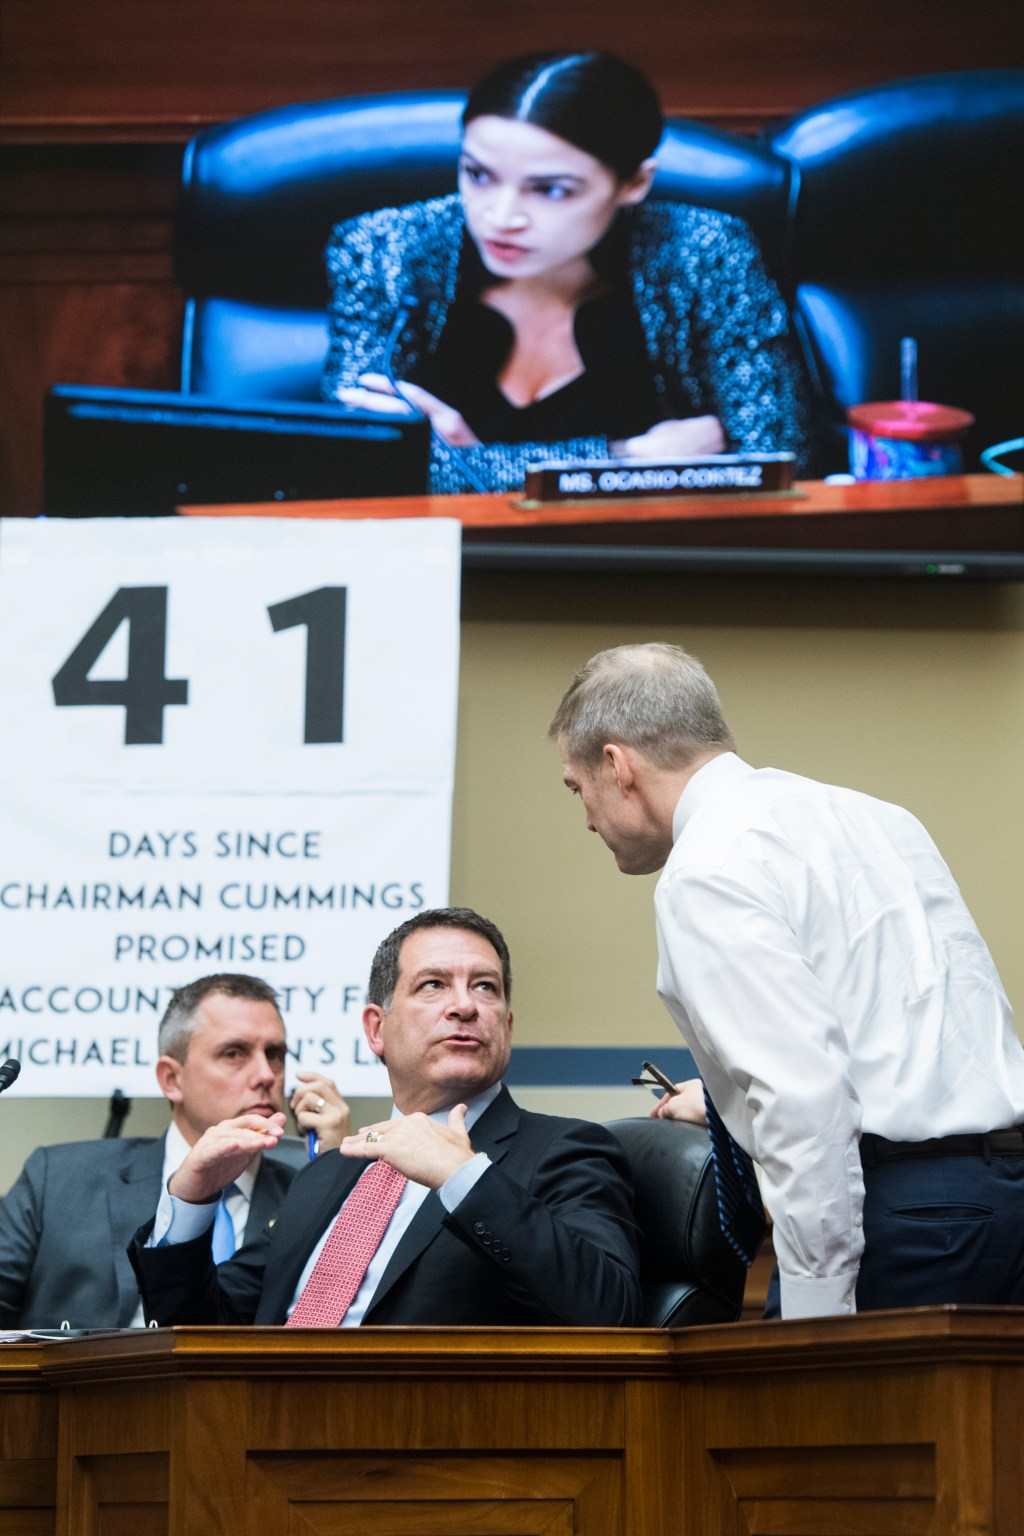 UNITED STATES - APRIL 9: From left, Reps. Kelly Armstrong, R-N.D., Mark Green, R-Tenn., and Jim Jordan, R-Ohio, are seen during a House Oversight and Reform Committee hearing in Rayburn Building titled